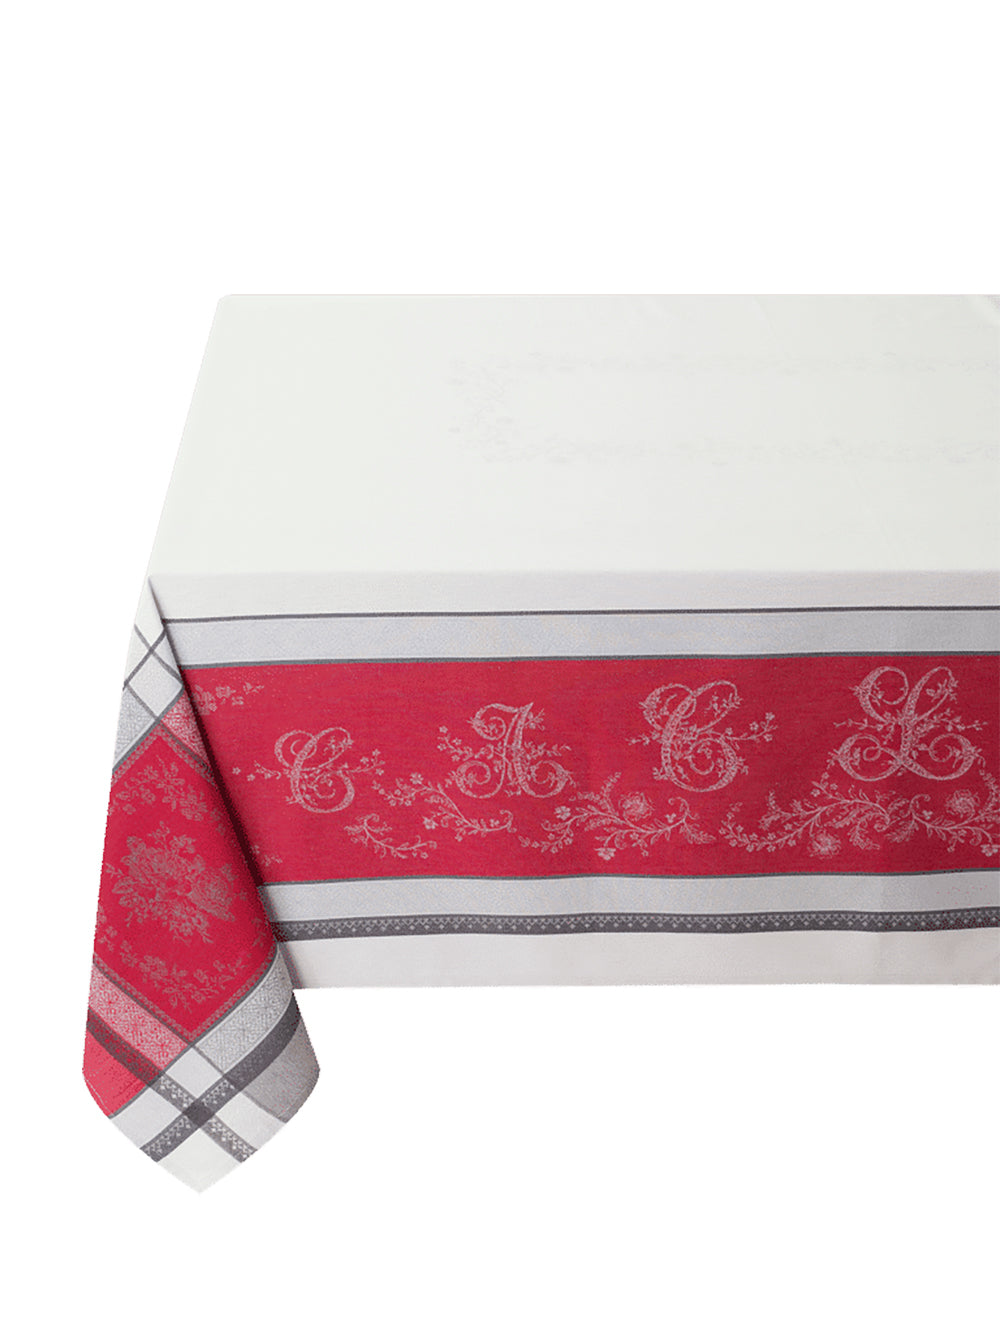 Jacquard Coated French Cotton Tablecloth 160x350cm - Red